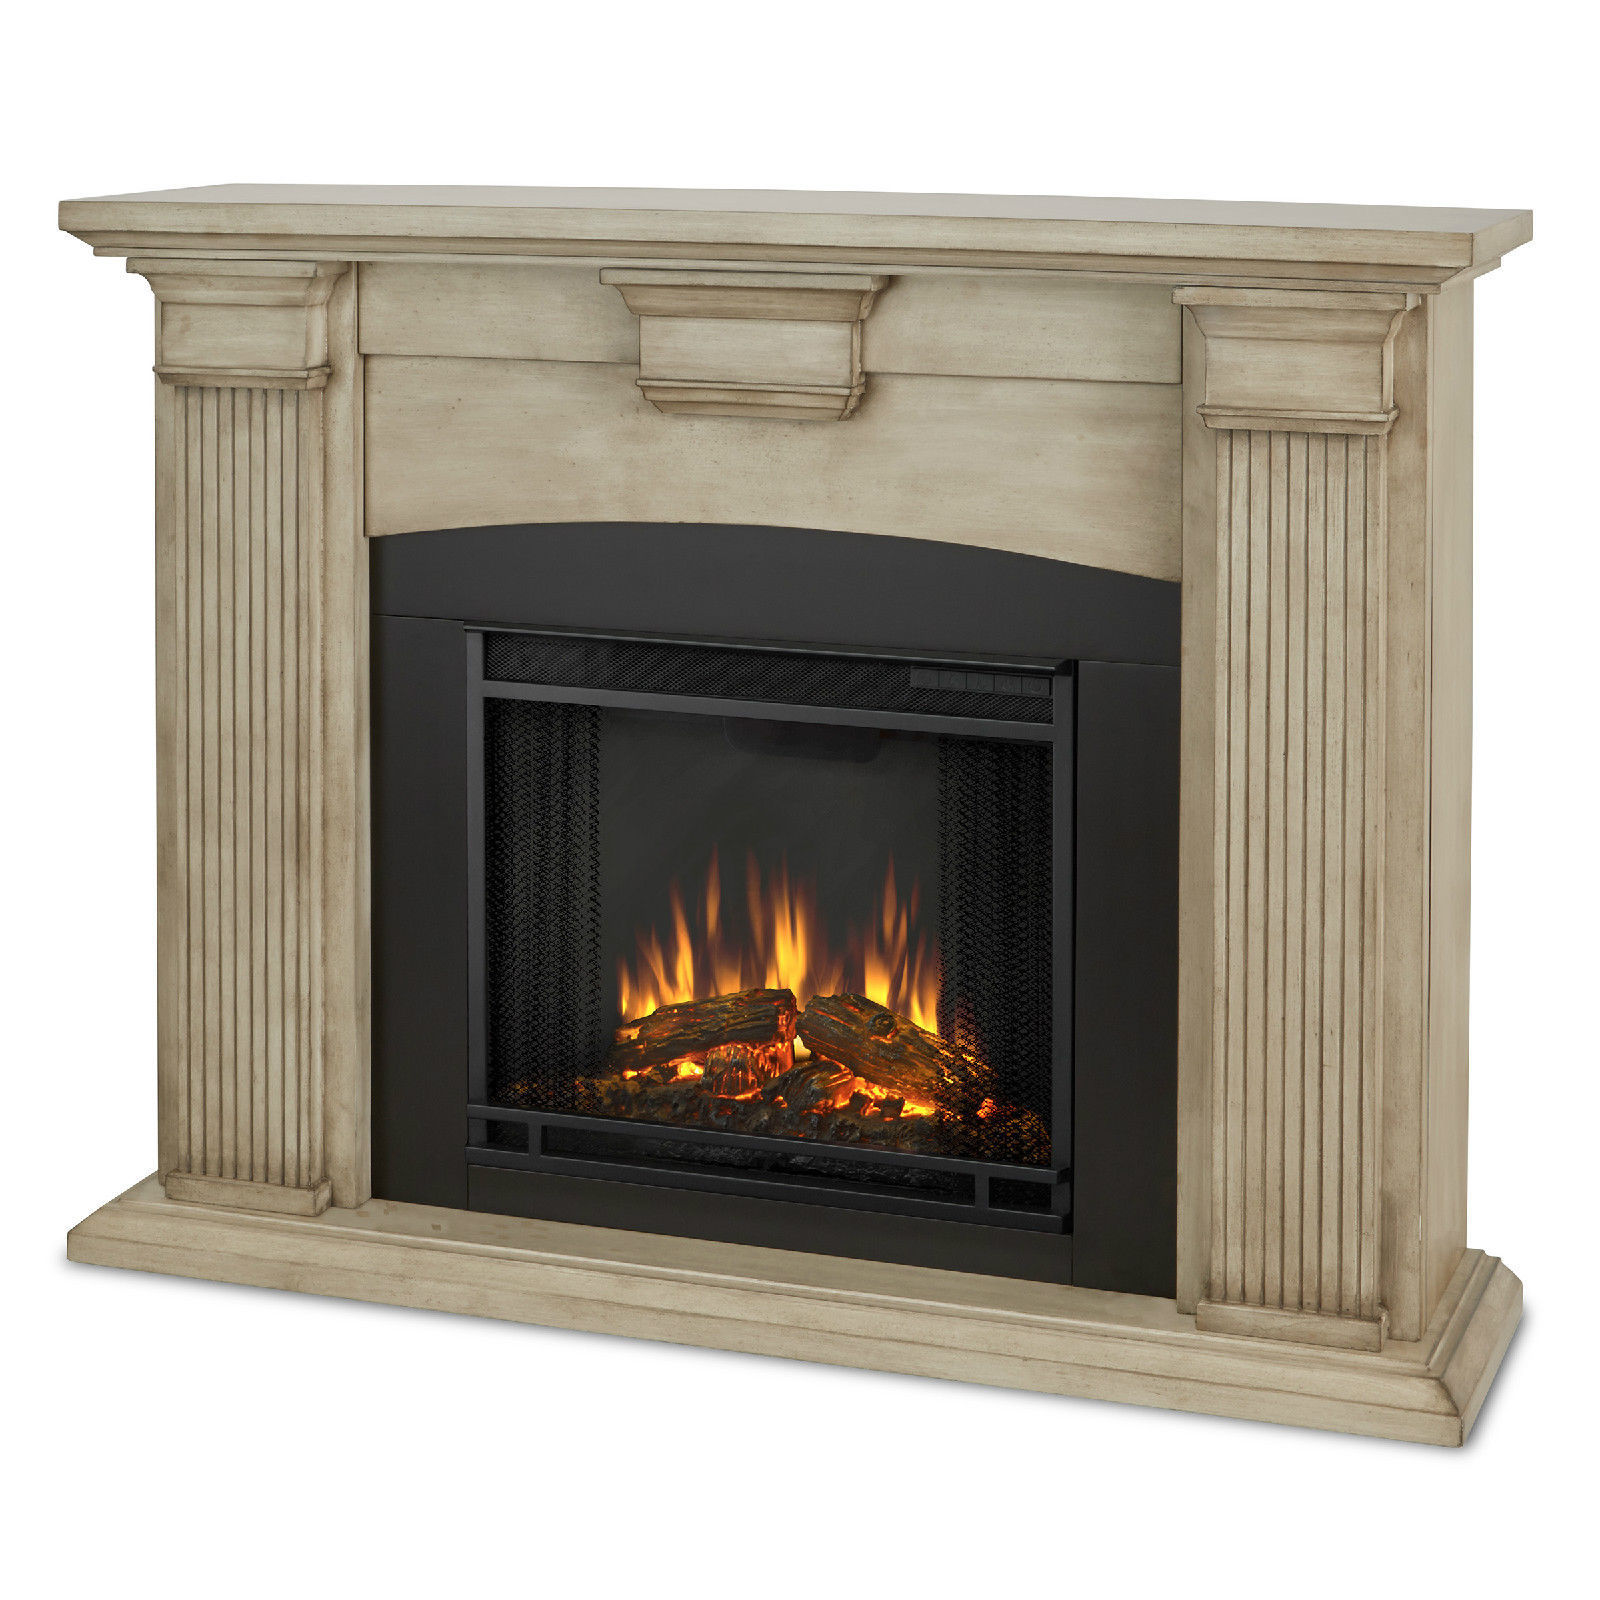 Real Flame Adelaide Electric Fireplace Heater Blackwash or Dry Brush White